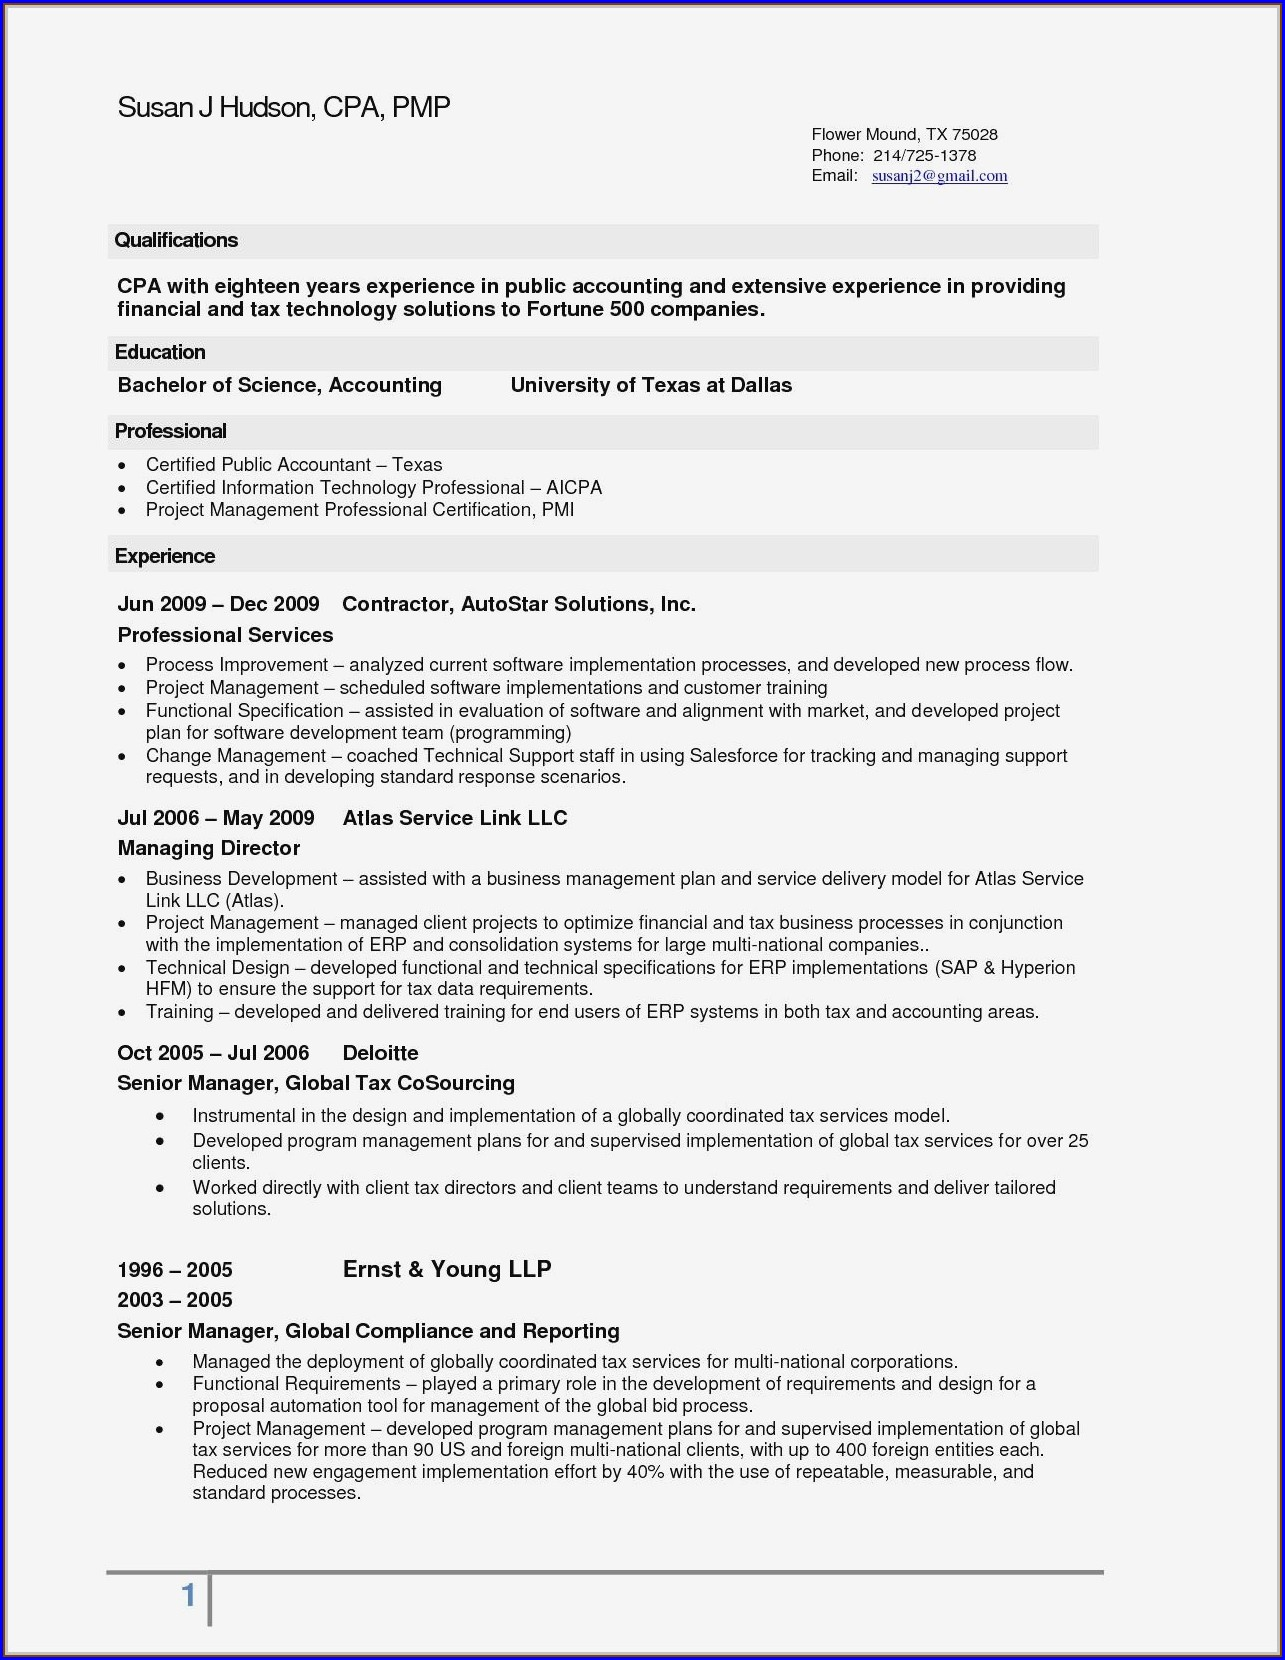 Professional Resume Format For Experienced Accountant